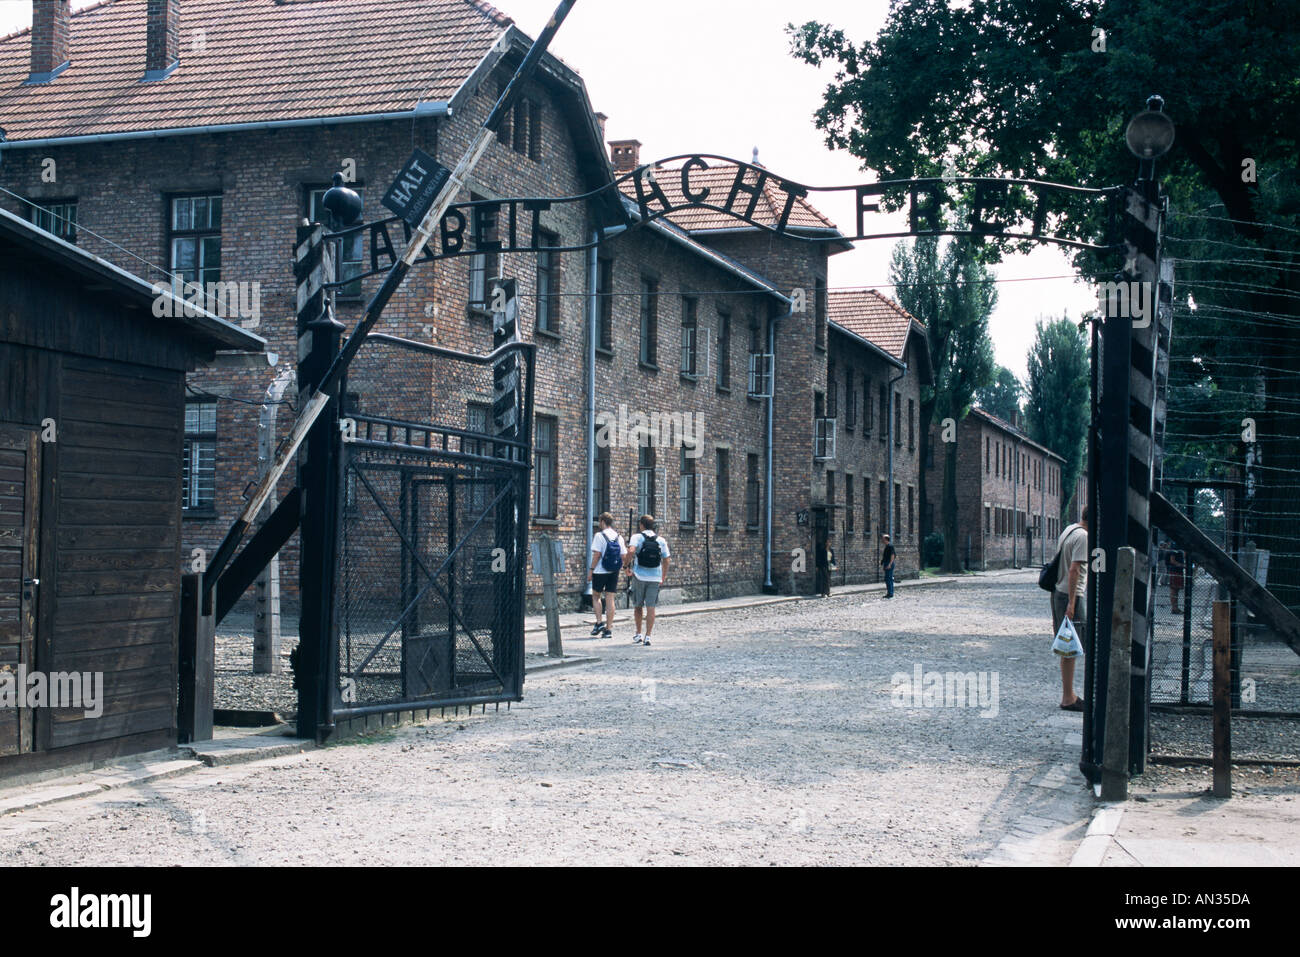 Arbeit Macht Frei: work sets you free; infamous words above the entry to Auschwitz, the Nazi concentration camp. now a museum - Stock Image